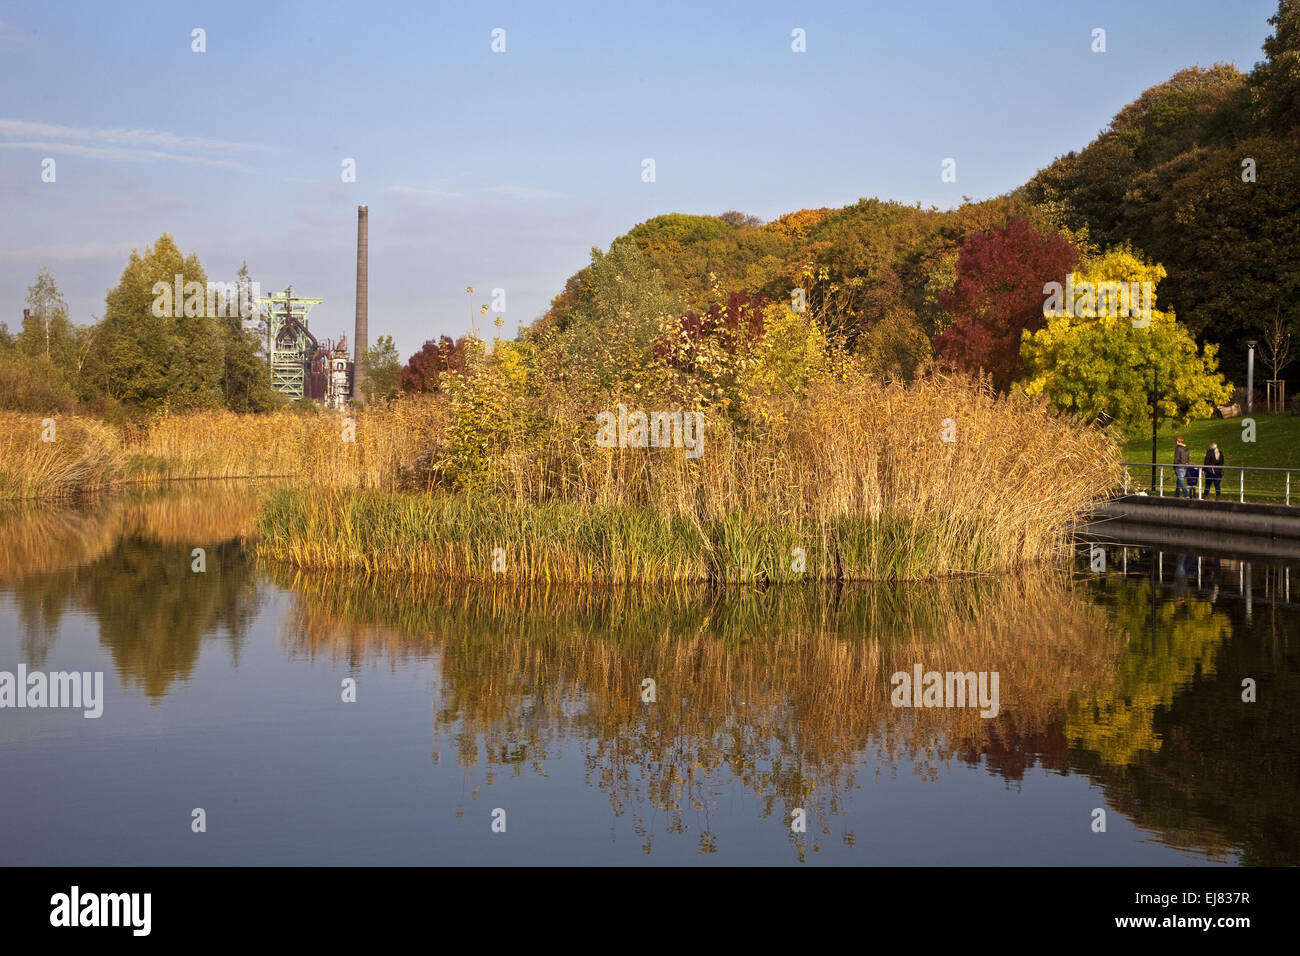 Henrichshuette Hattingen Steelworks, Germany. Stock Photo